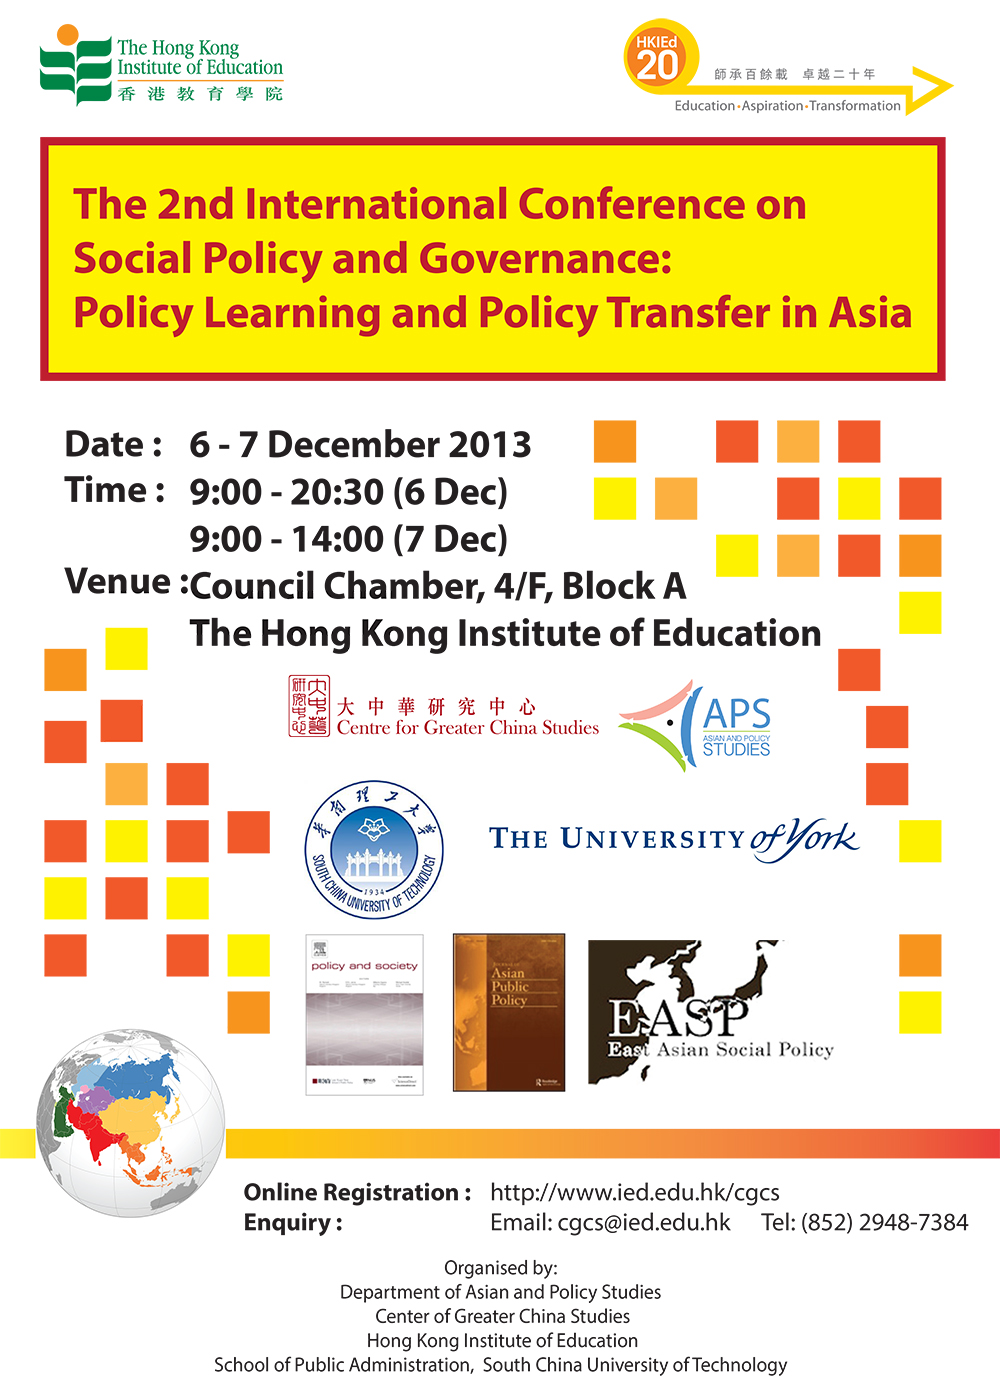 The 2nd International Conference on Social Policy and Governance Innovation: Policy Learning and Policy Transfer in Asia